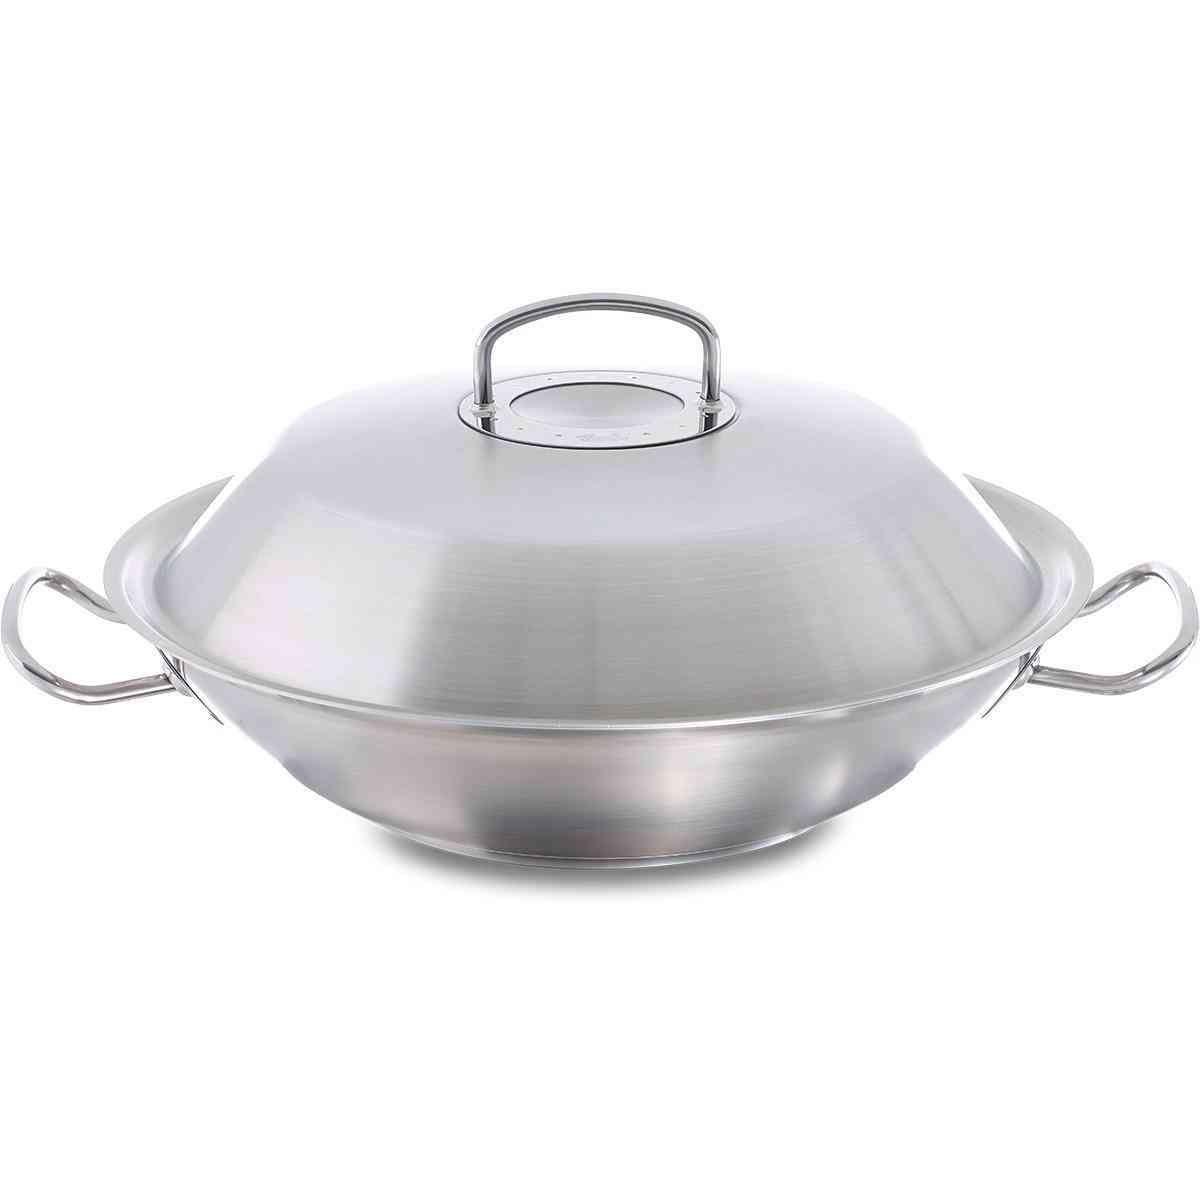 original-profi collection wok 30 cm with metal lid